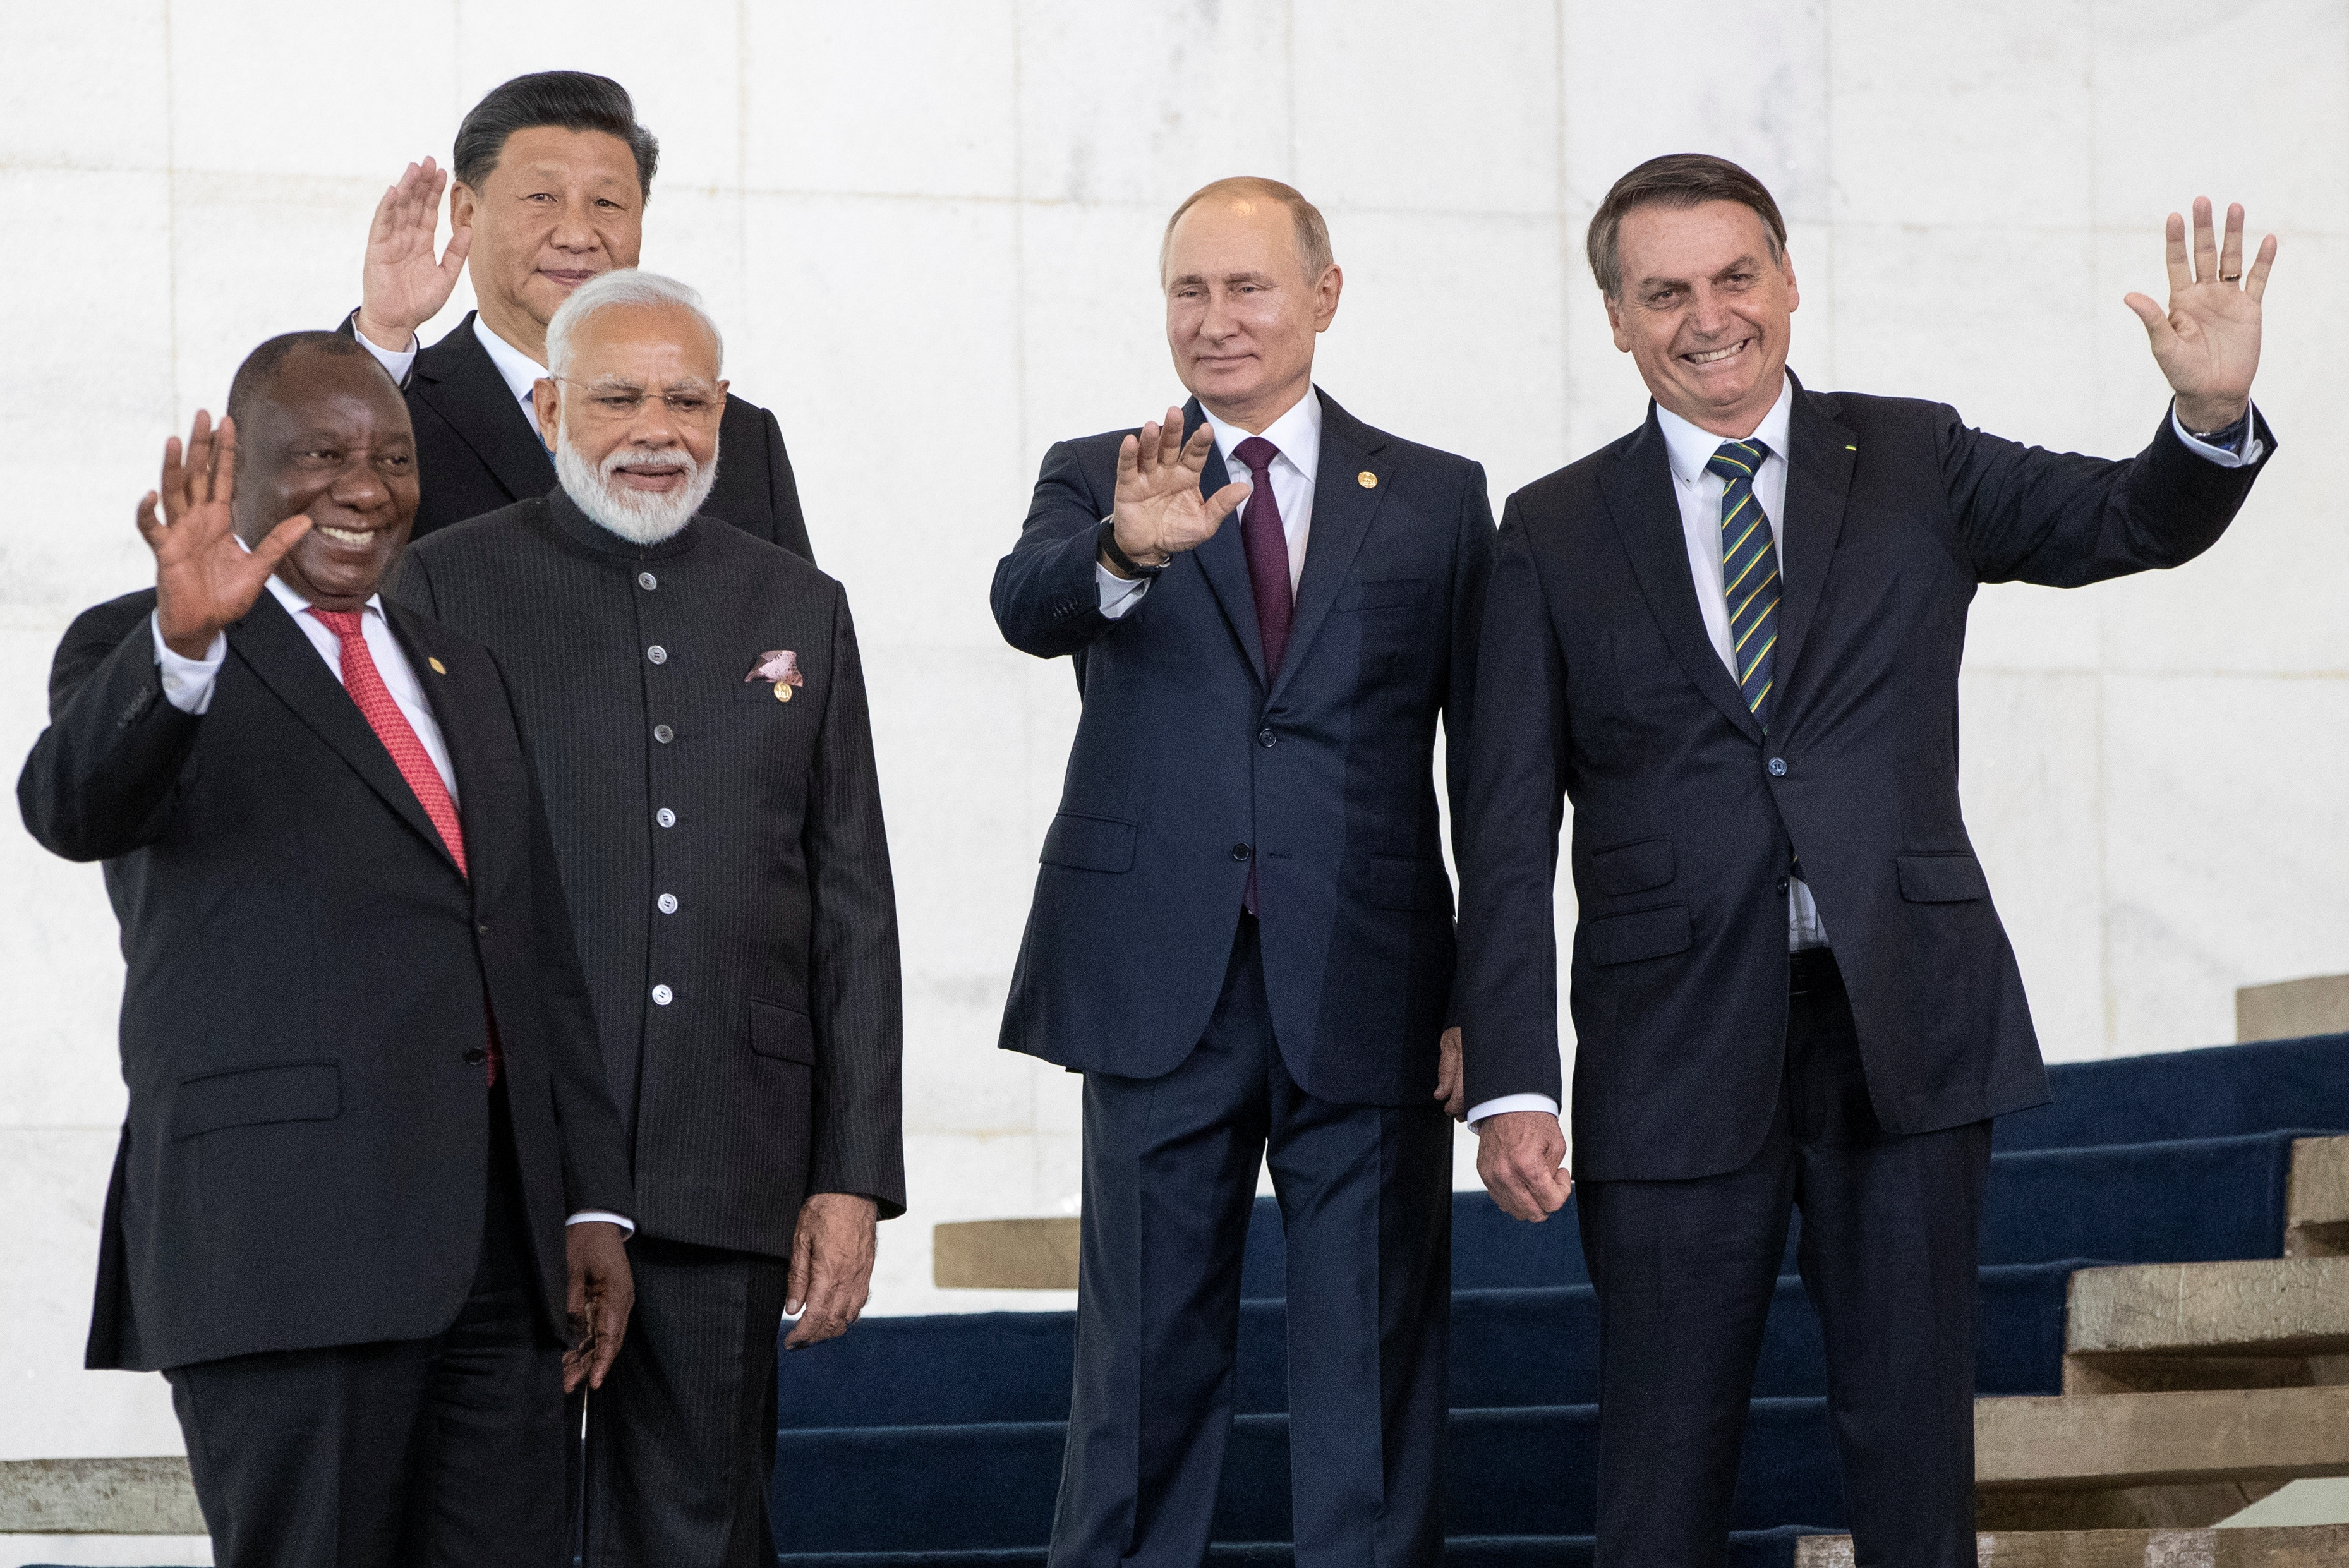 South Africa's President Cyril Ramaphosa, China's President Xi Jinping, India's Prime Minister Narendra Modi, Russia's President Vladimir Putin and Brazil's President Jair Bolsonaro pose for a photo at the BRICS summit in Brazil in 2019.